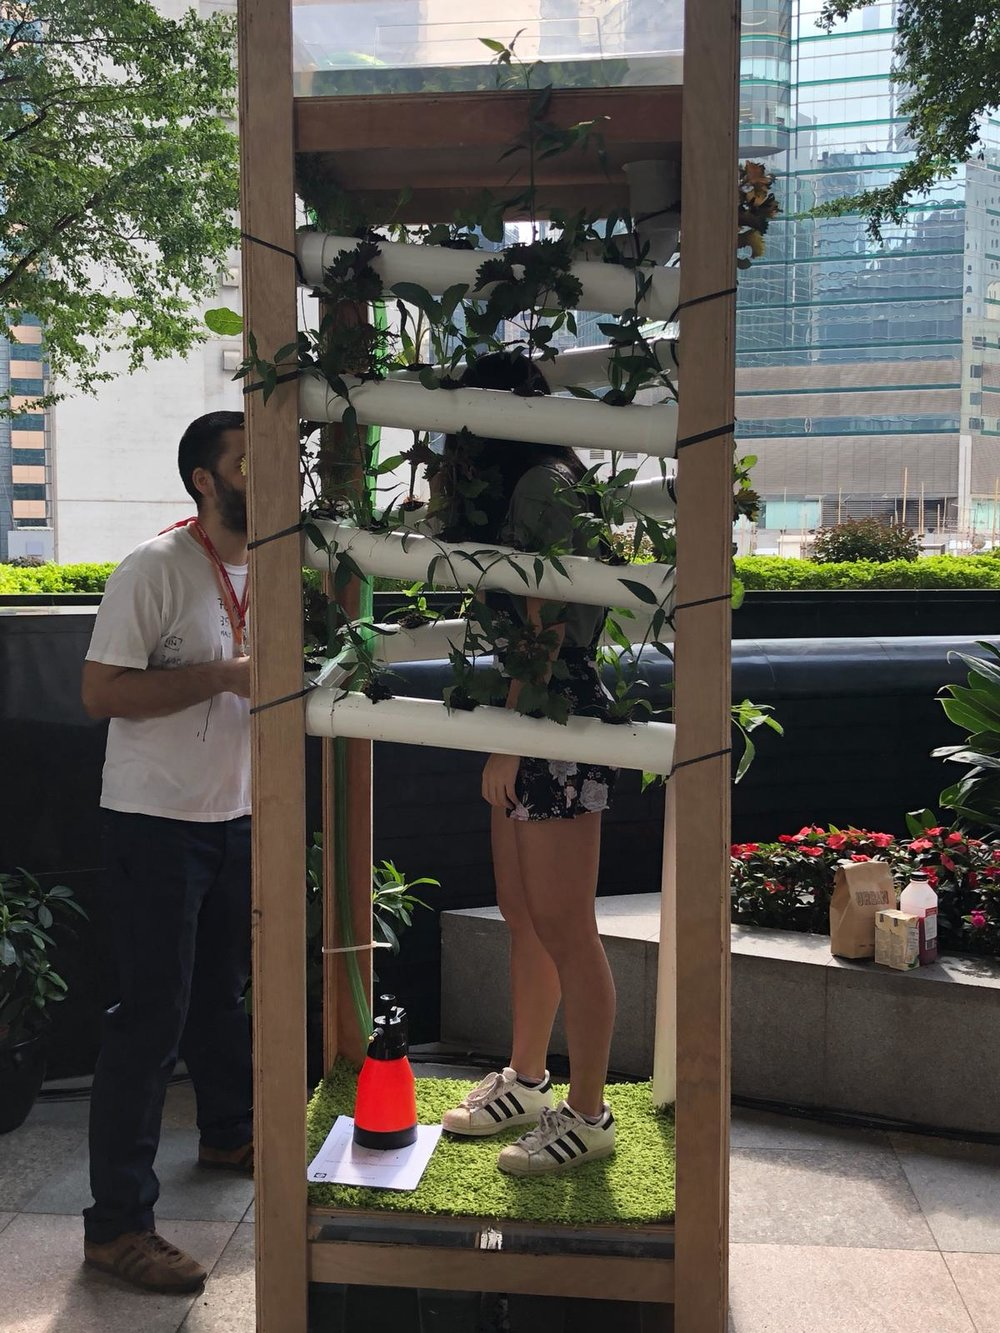 Standing inside the Hydroponic installation at Green Fest